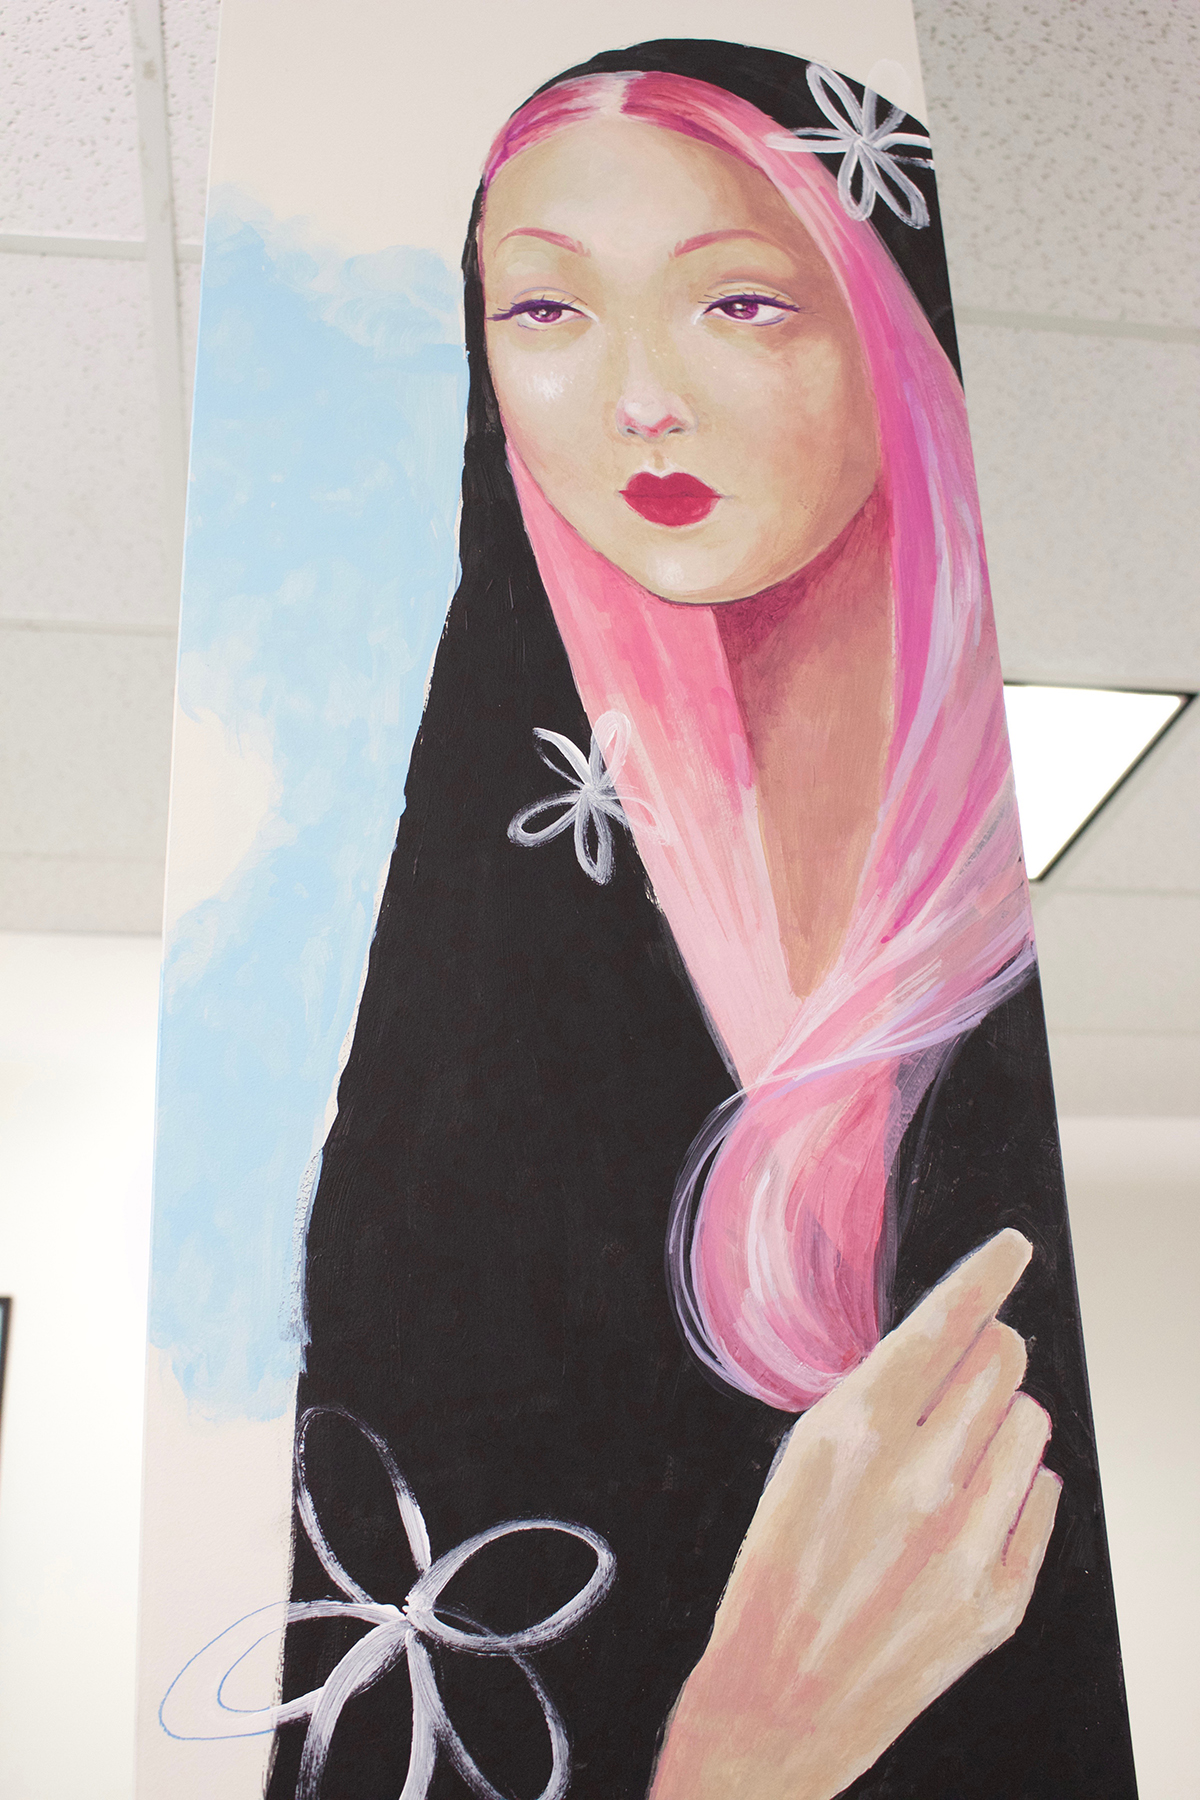 Shailin Messer painting of a woman with pink hair with a black blanket on her head on one of the columns at CommCreative